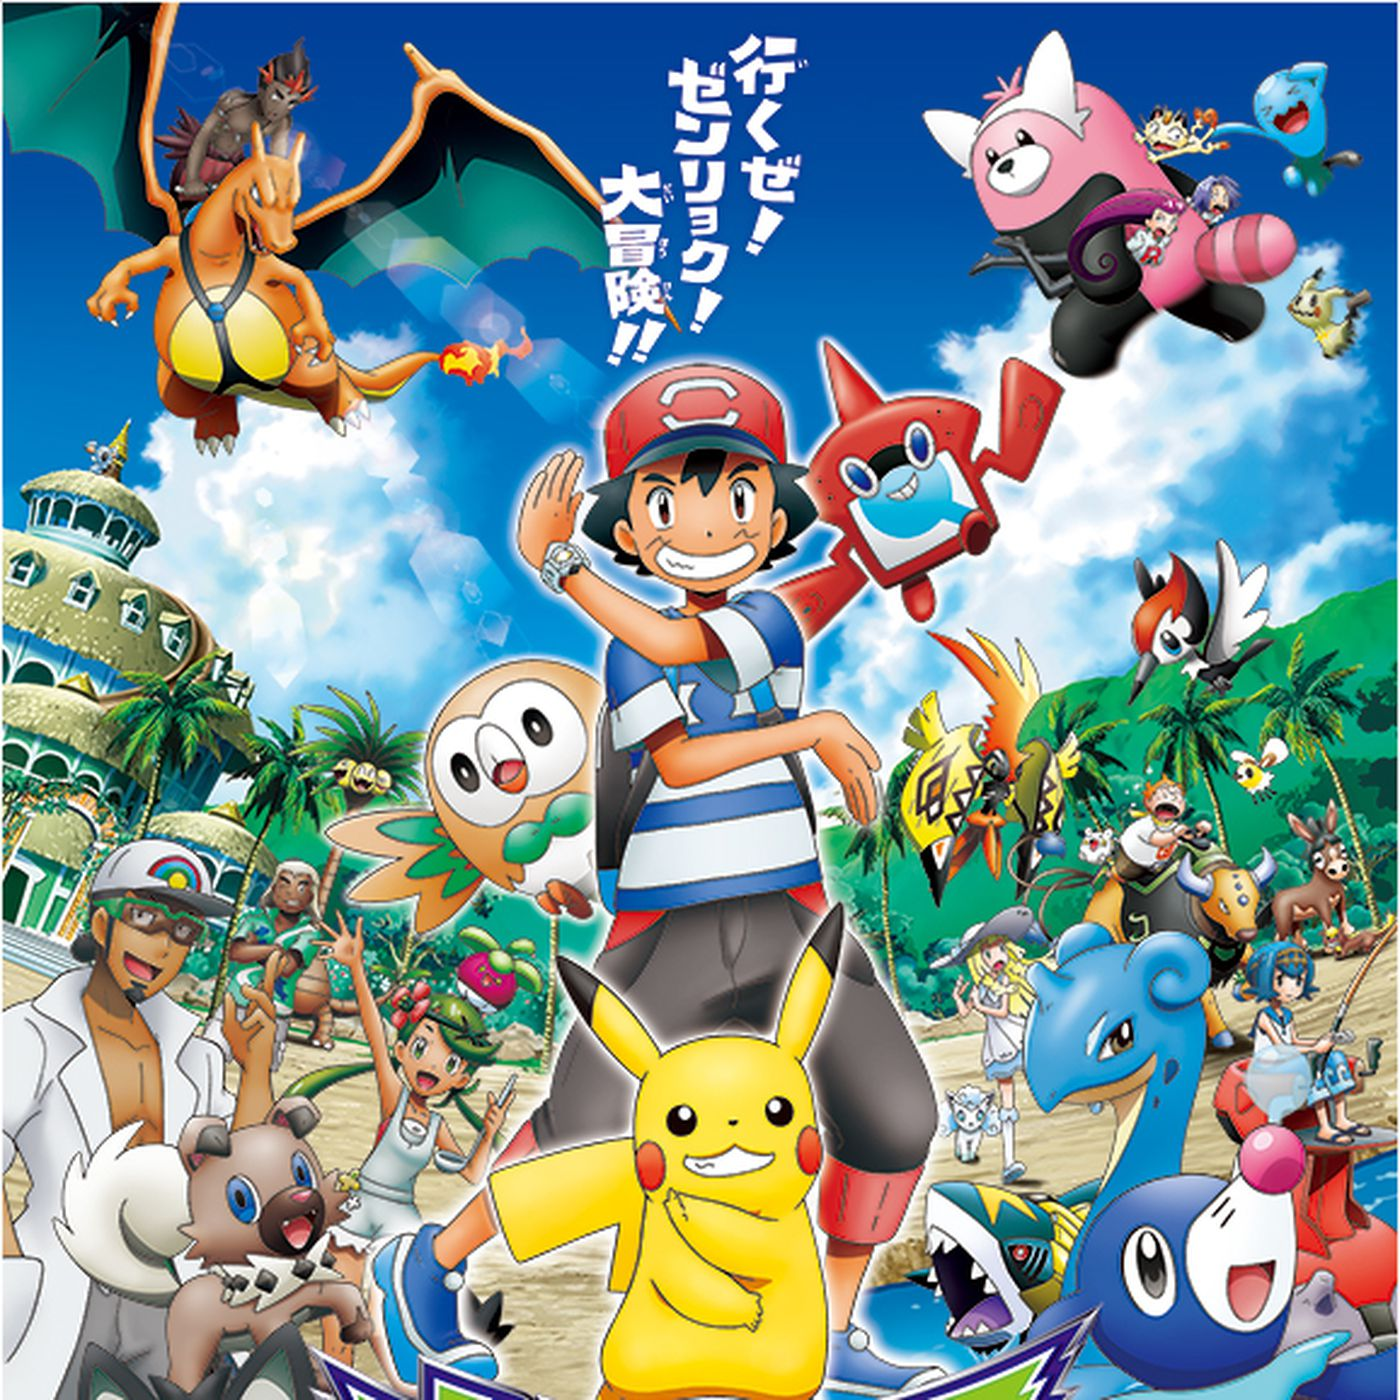 AGCollections of ANIME: POKEMON THE SERIES: SUN & MOON EPISODE 103